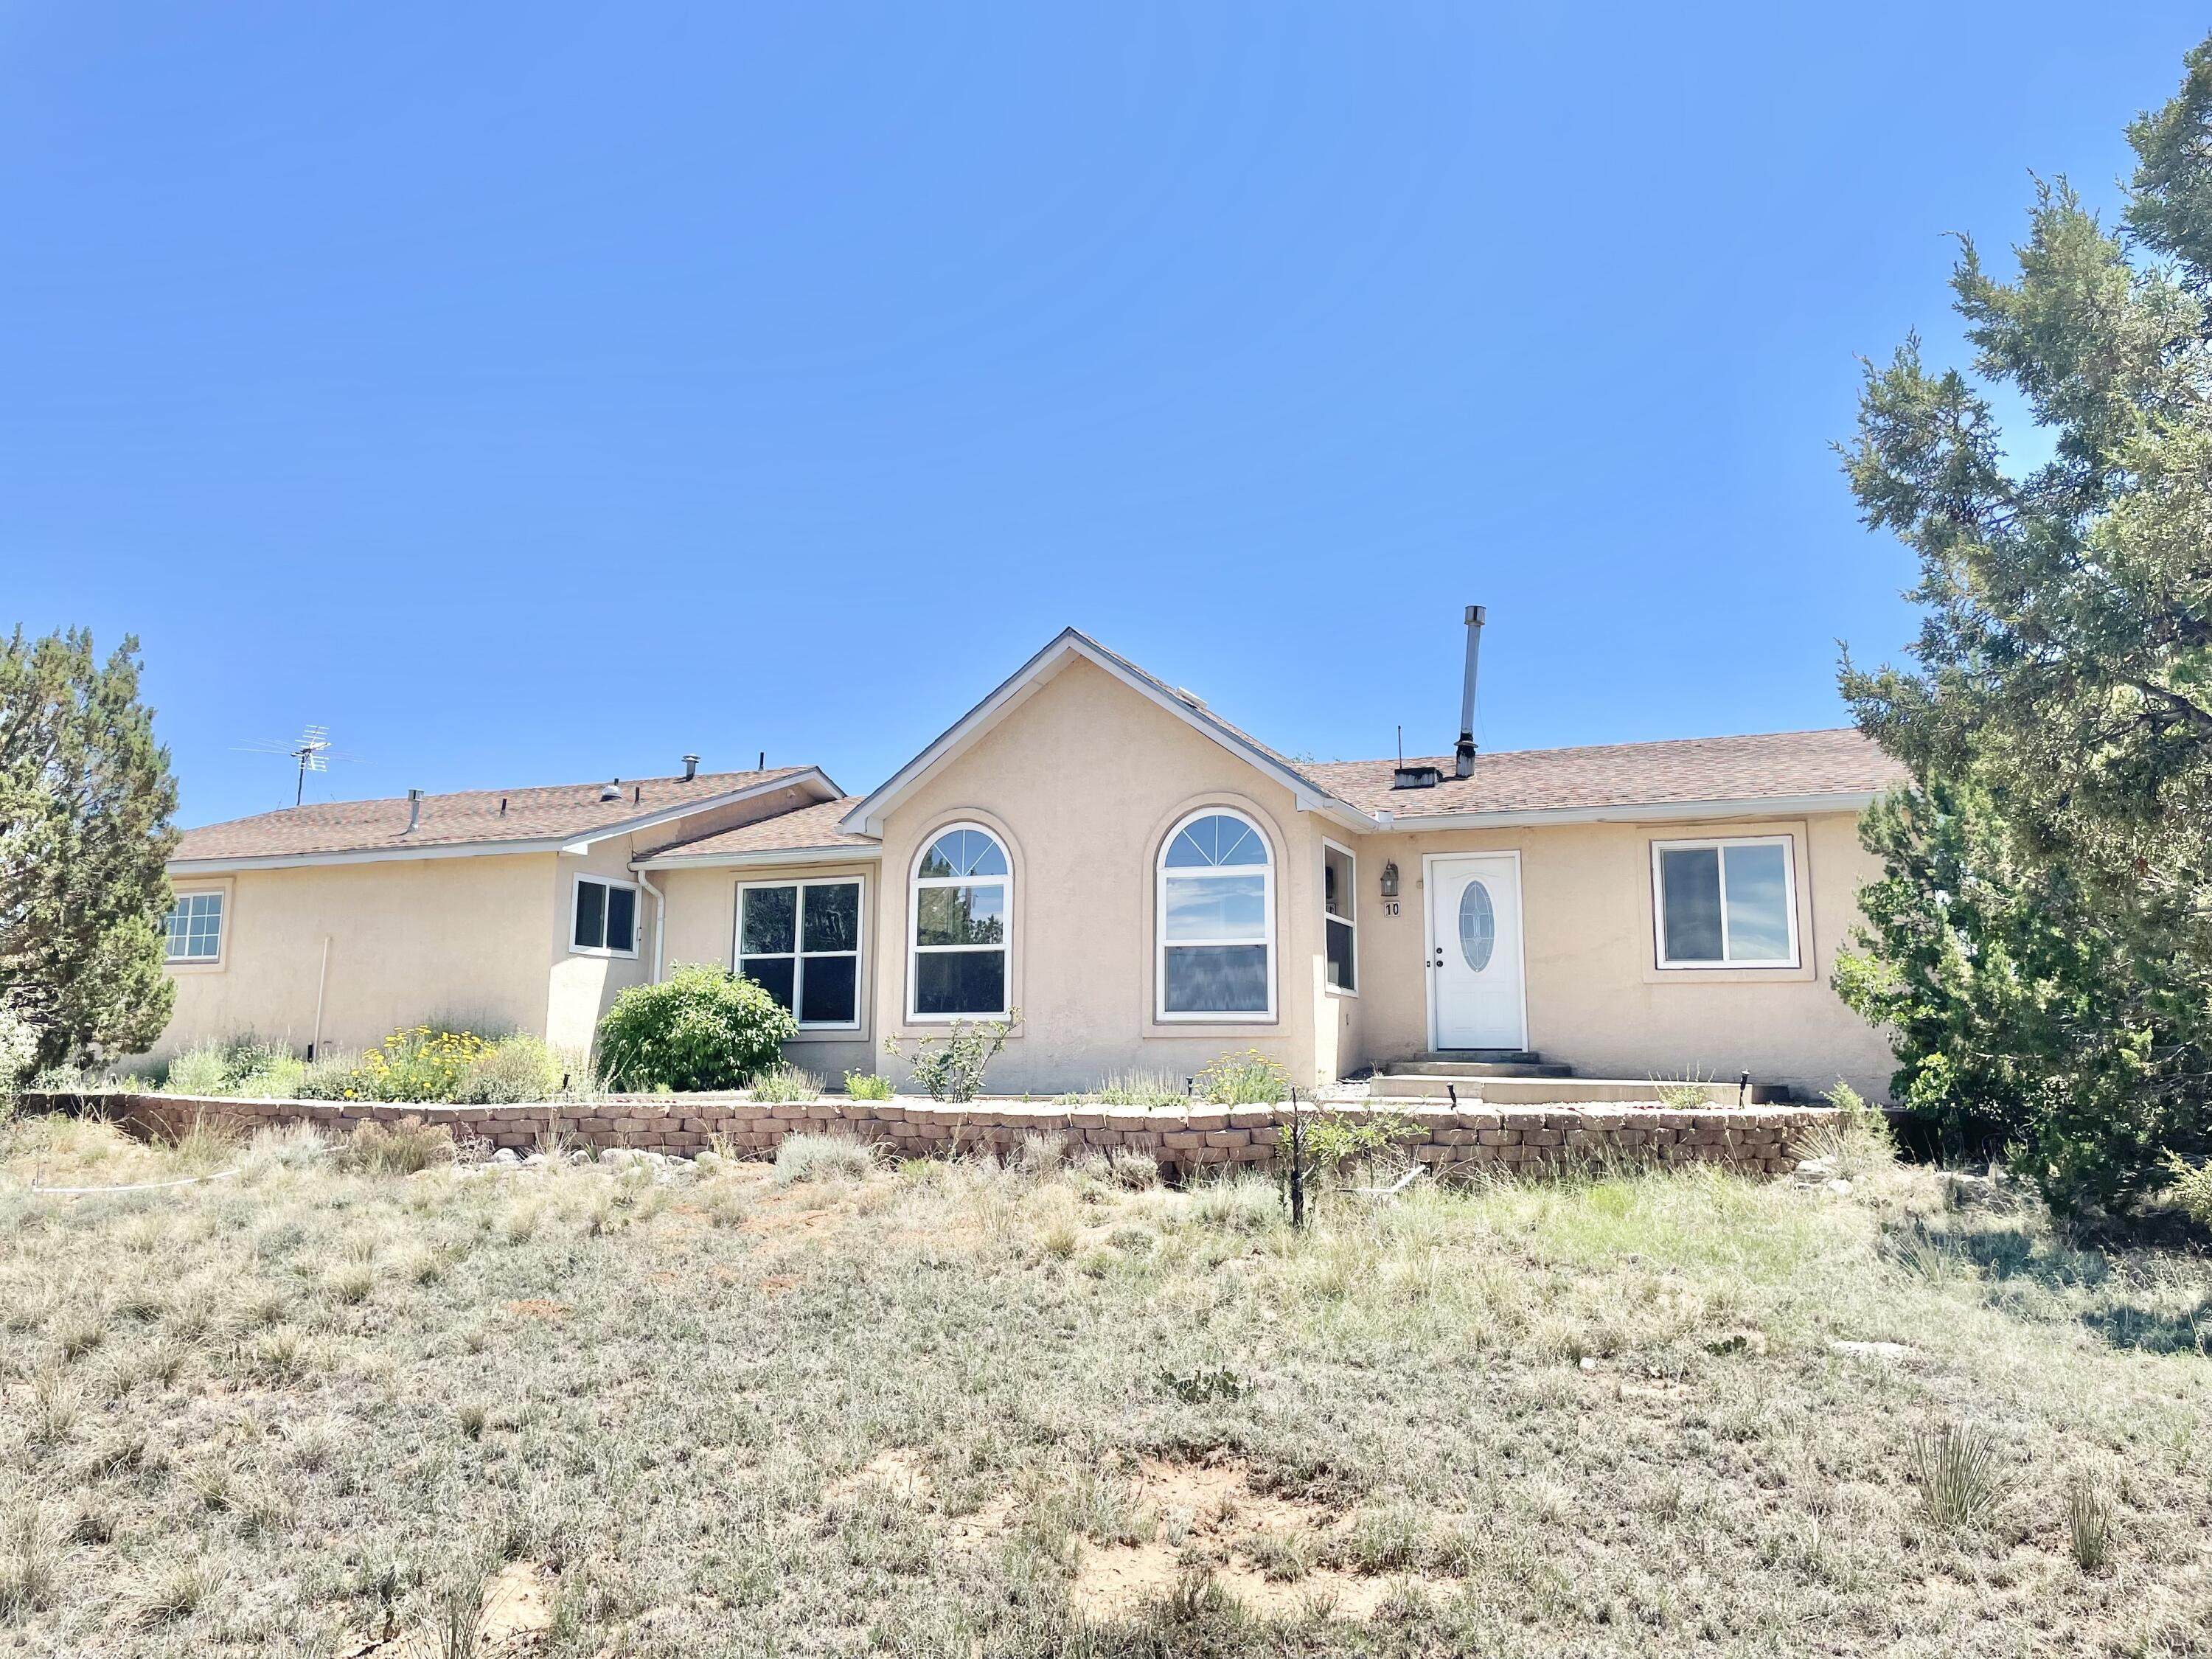 Listed below market value for a quick sale.  Right in the heart of Edgewood.  Great Views, Lovely Landscaped yard, just over 2 acres. Private walled back courtyard. Two Living areas, family room has cozy woodstove. Master has gorgeous Master Bathroom.  Close to Shopping and access to Albuquerque.